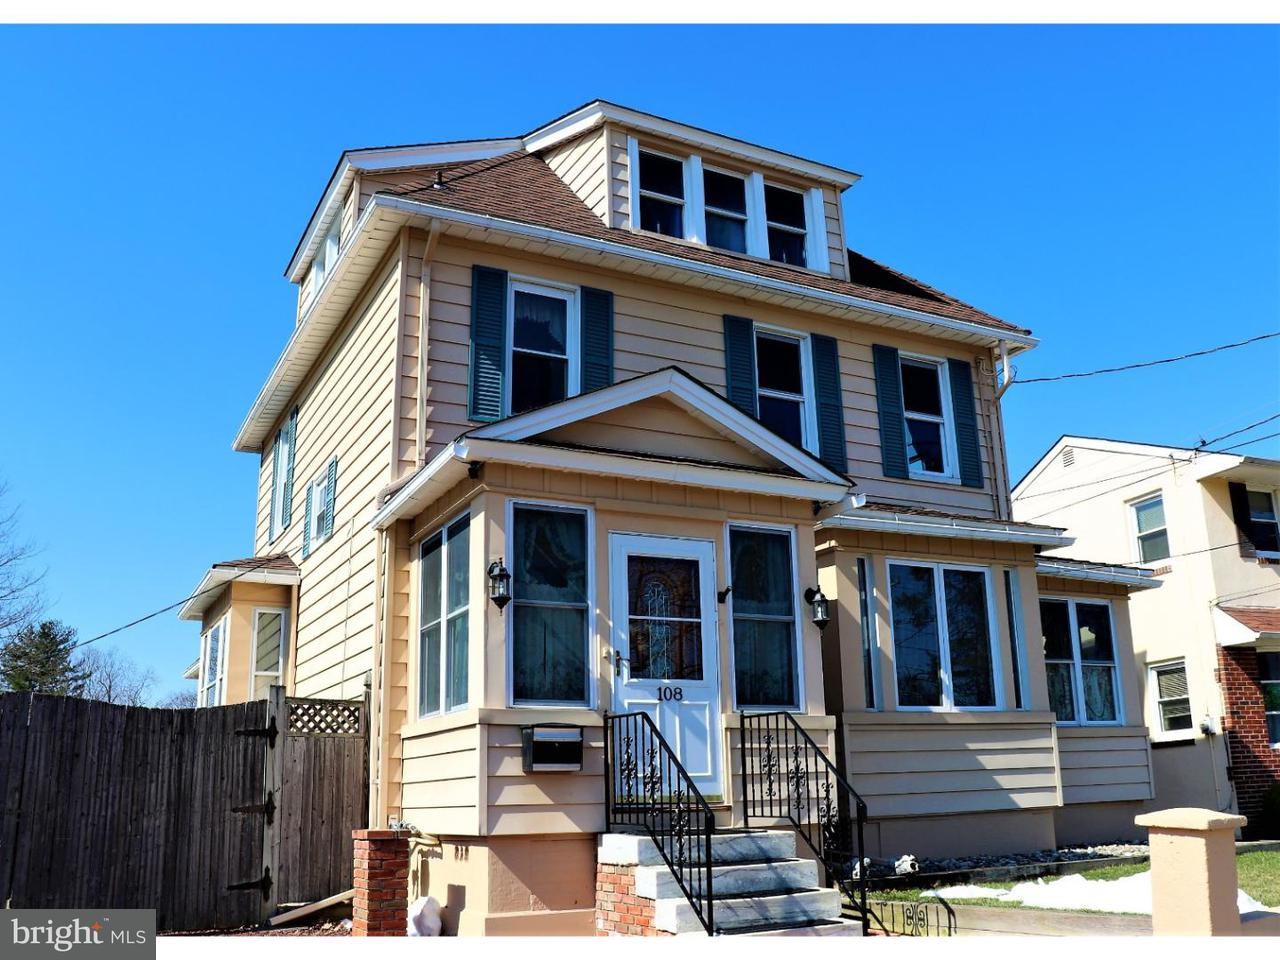 Single Family Home for Sale at 108 SW ATLANTIC Avenue Magnolia, New Jersey 08049 United States